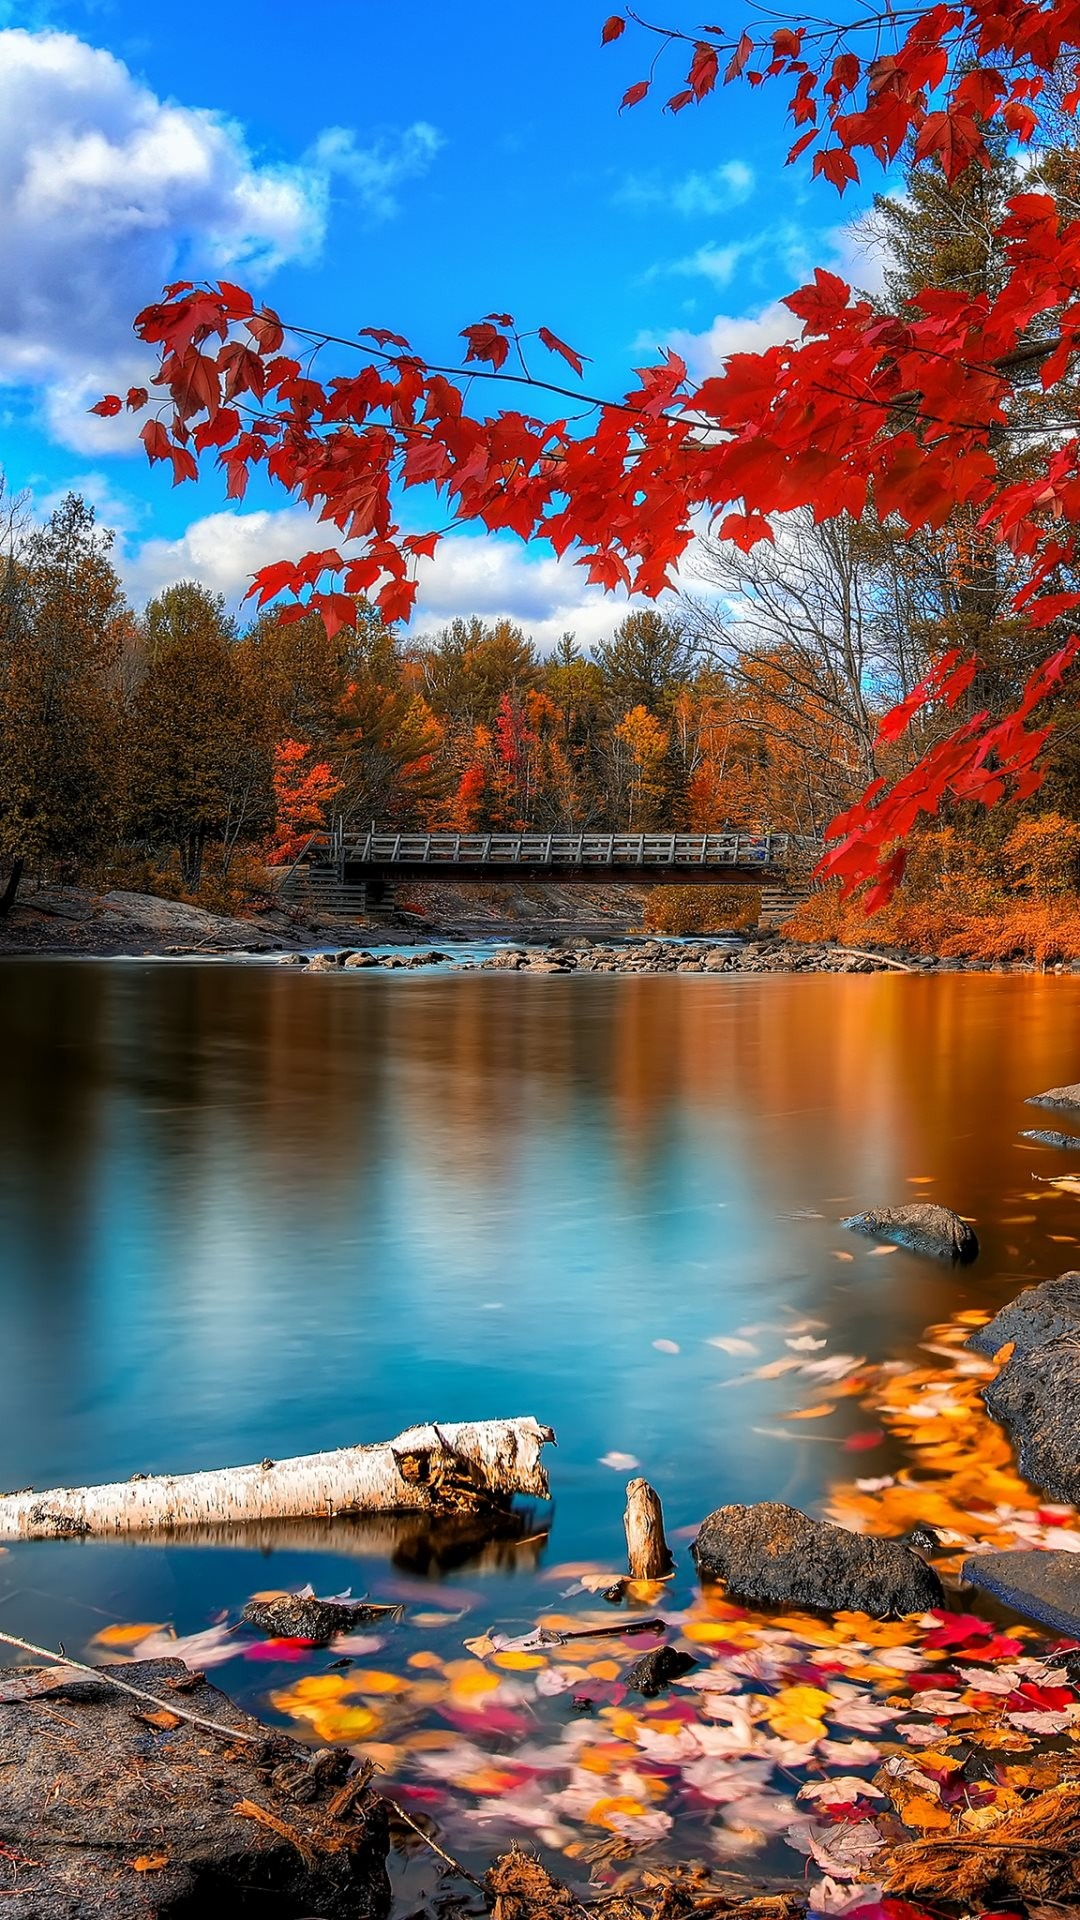 Autumn scenery – Tap to see more beautiful nature wallpapers! – @mobile9